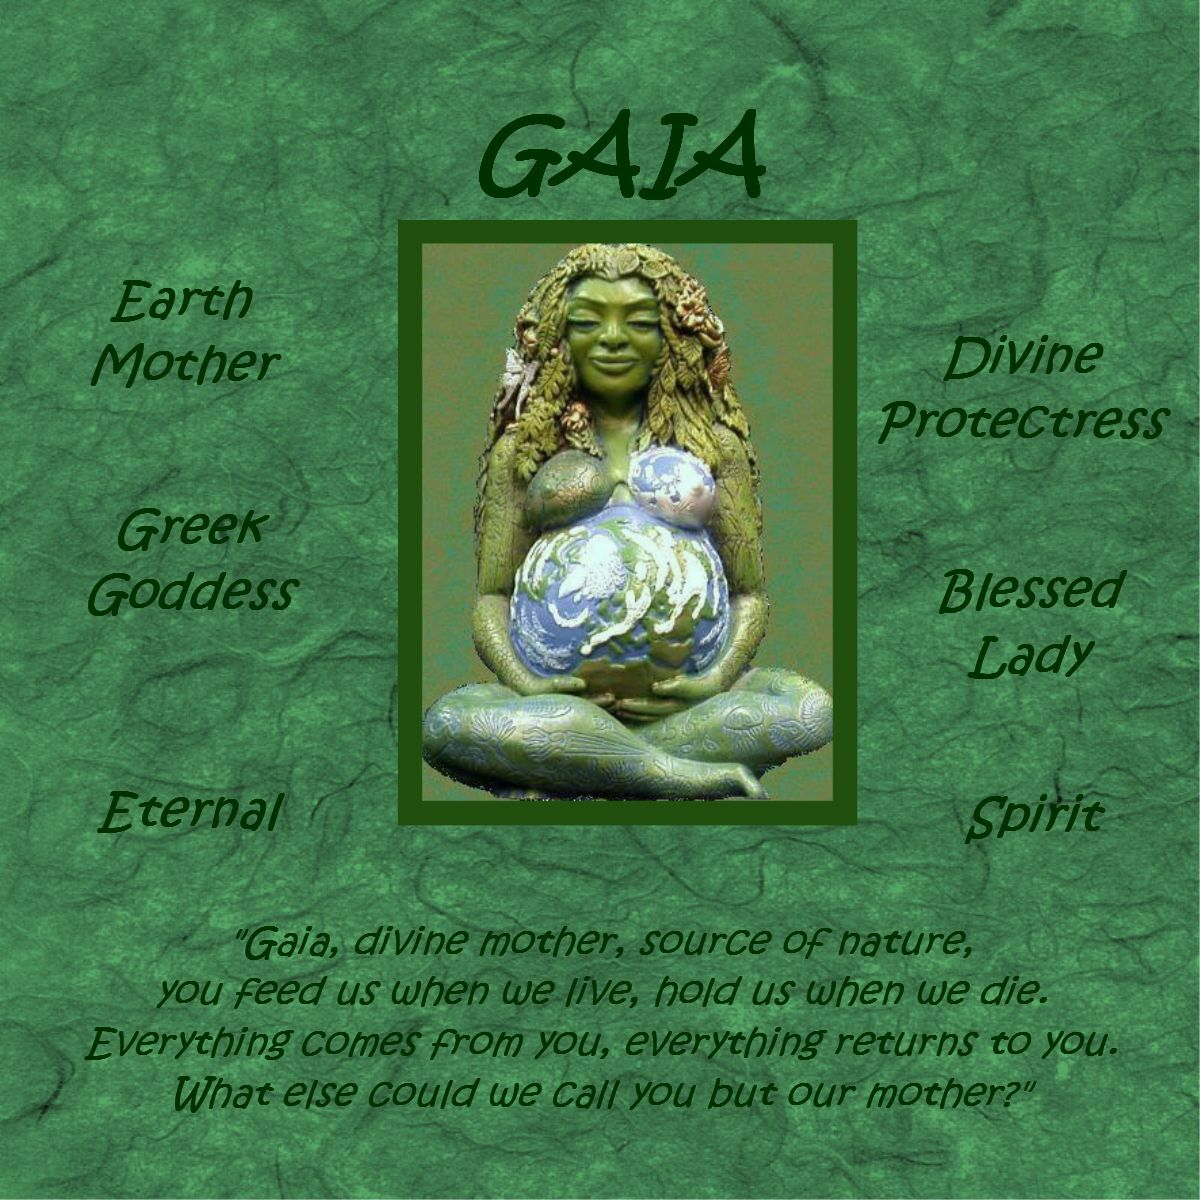 d03ee91a9803d The Millennial Gaia - The Visionary Mother Earth Goddess Sculpture ...